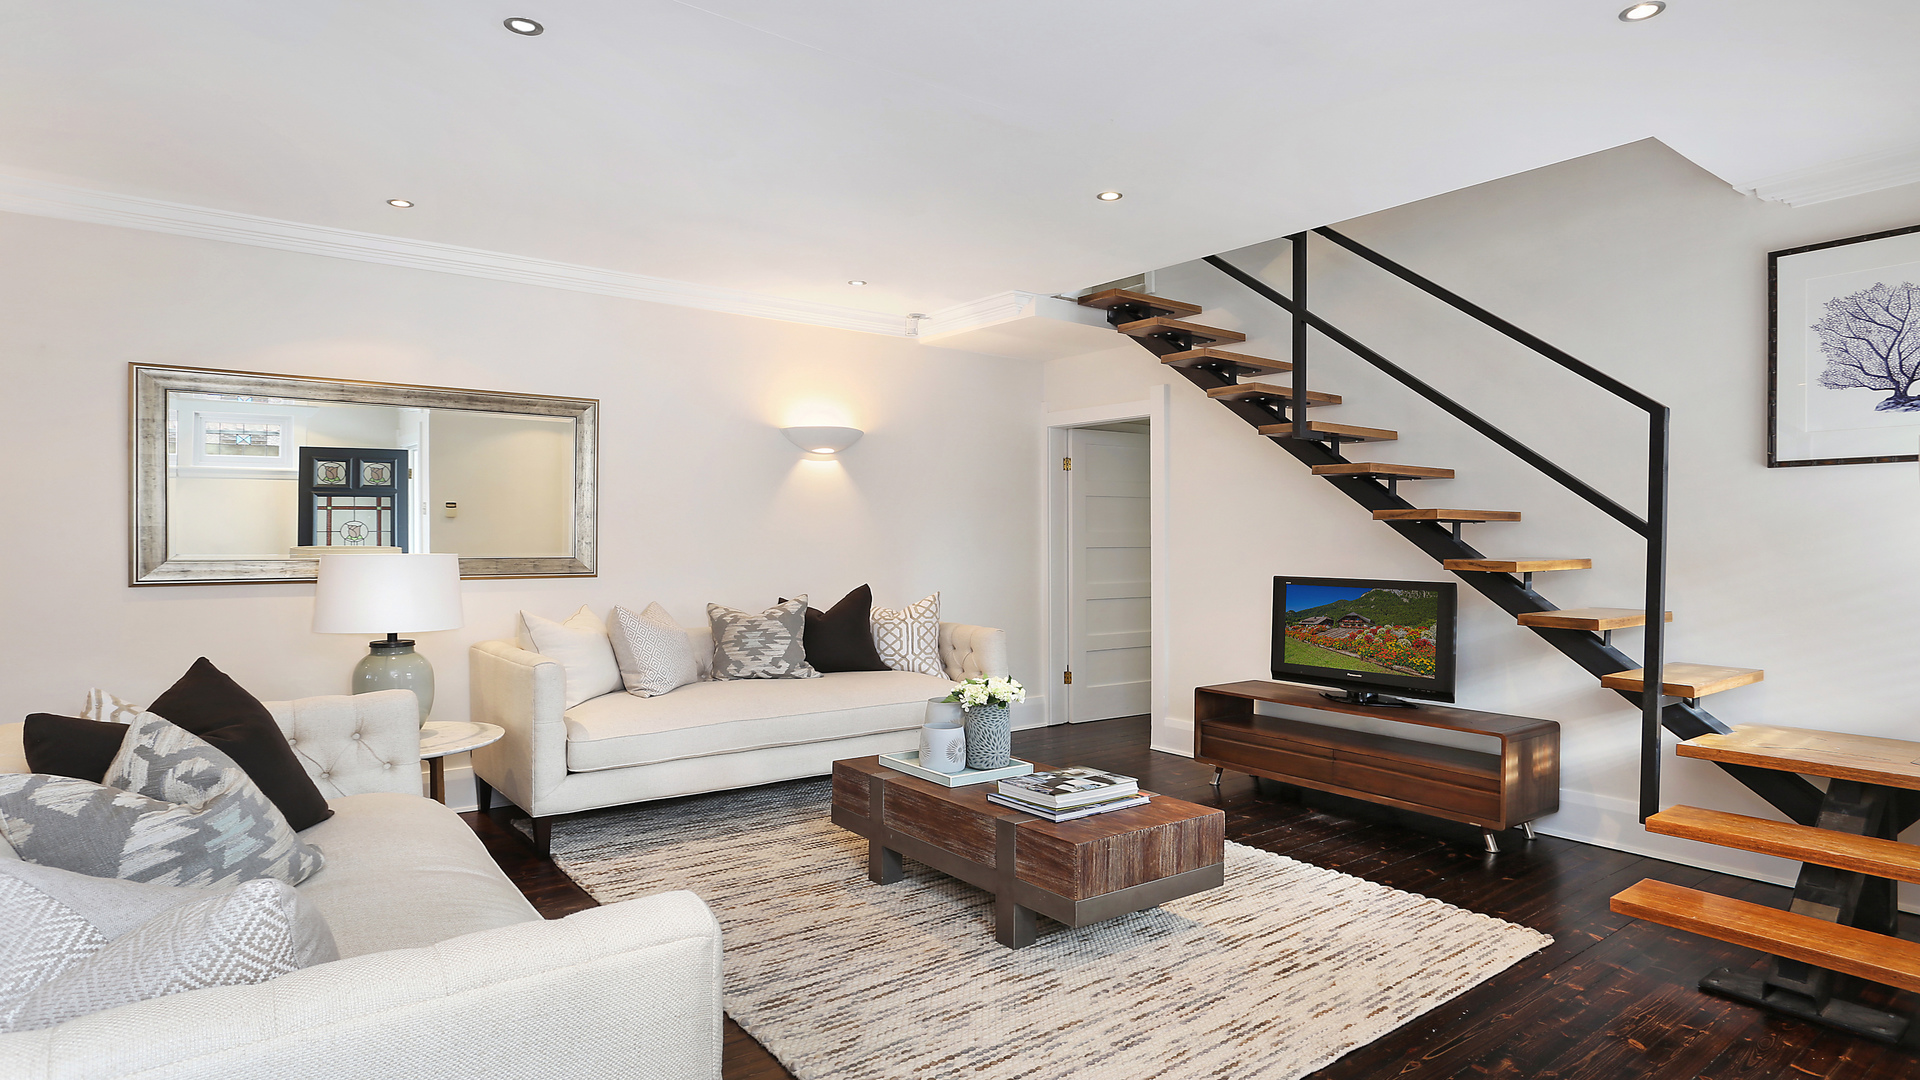 Property Providers Real Estate Agency In Mosman Nsw 2088